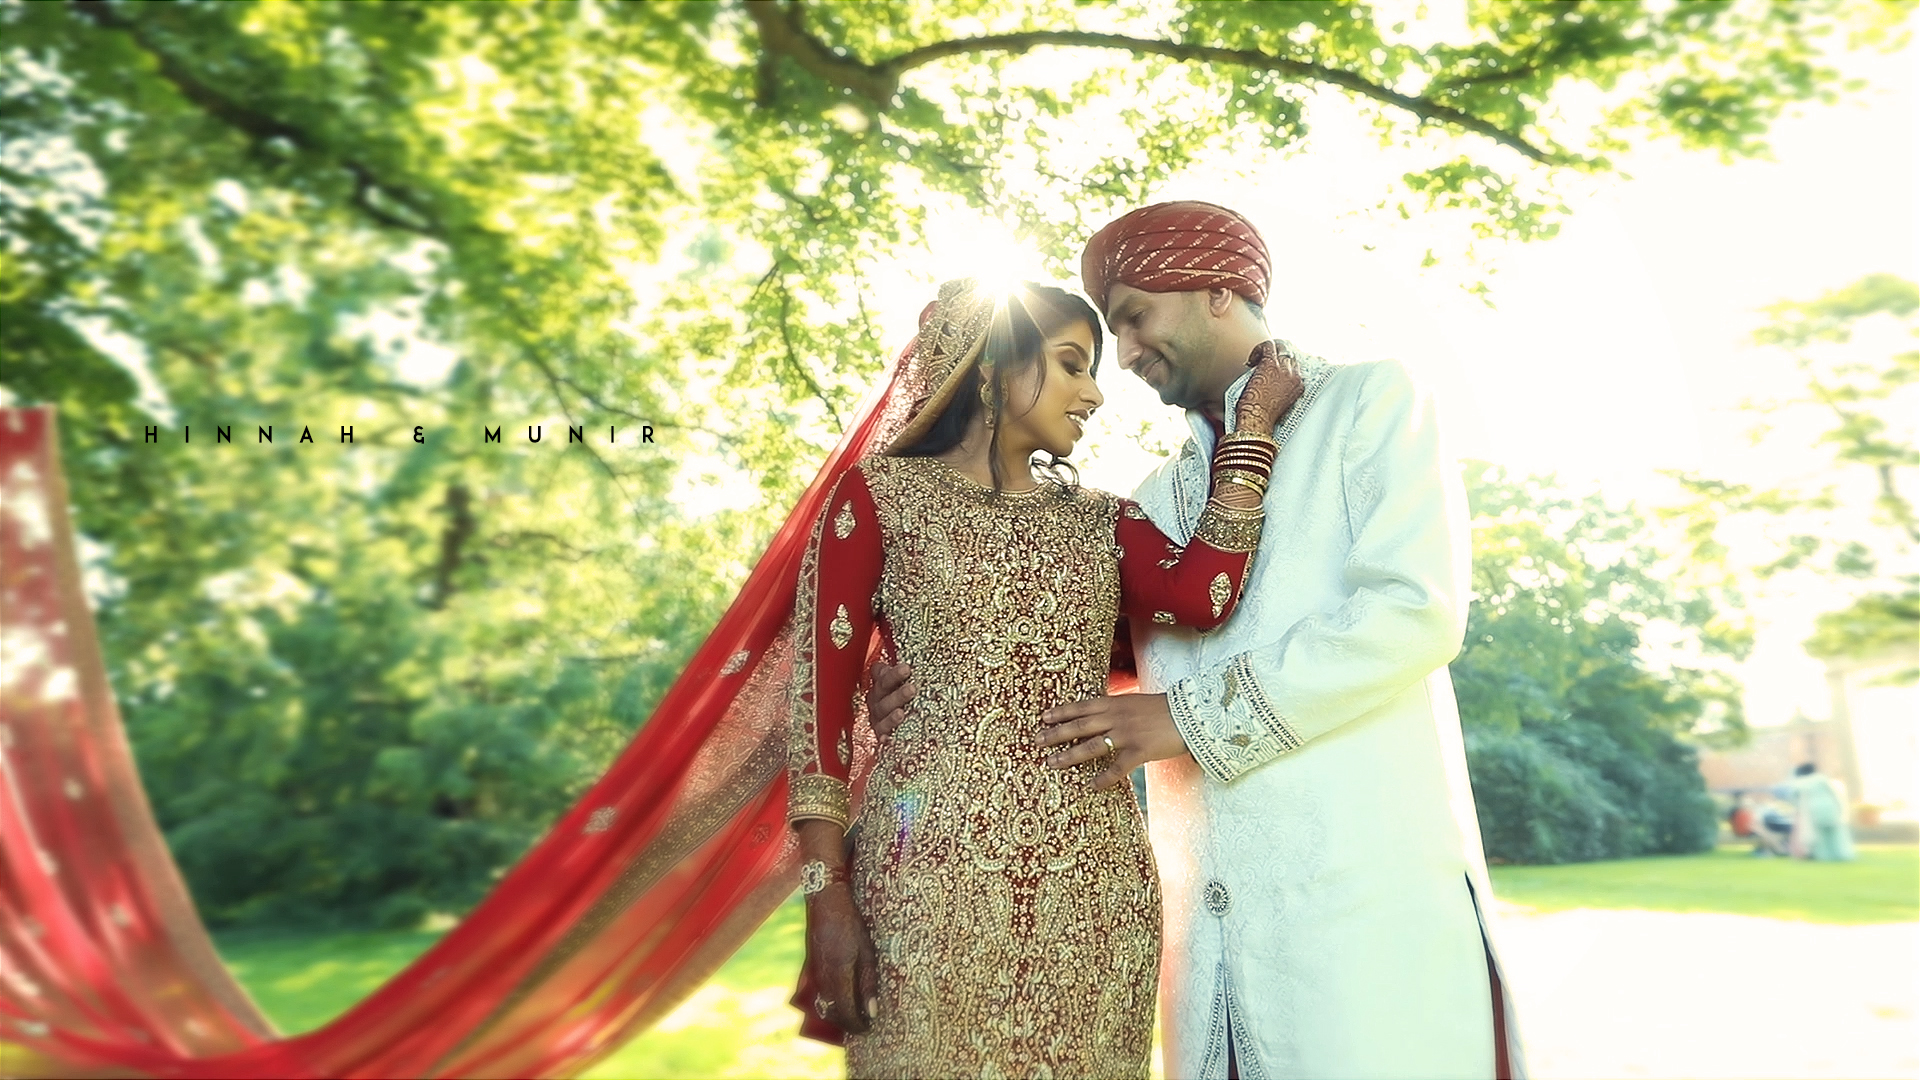 Hinnah + Munir | Blacon, United Kingdom | Tatton Park